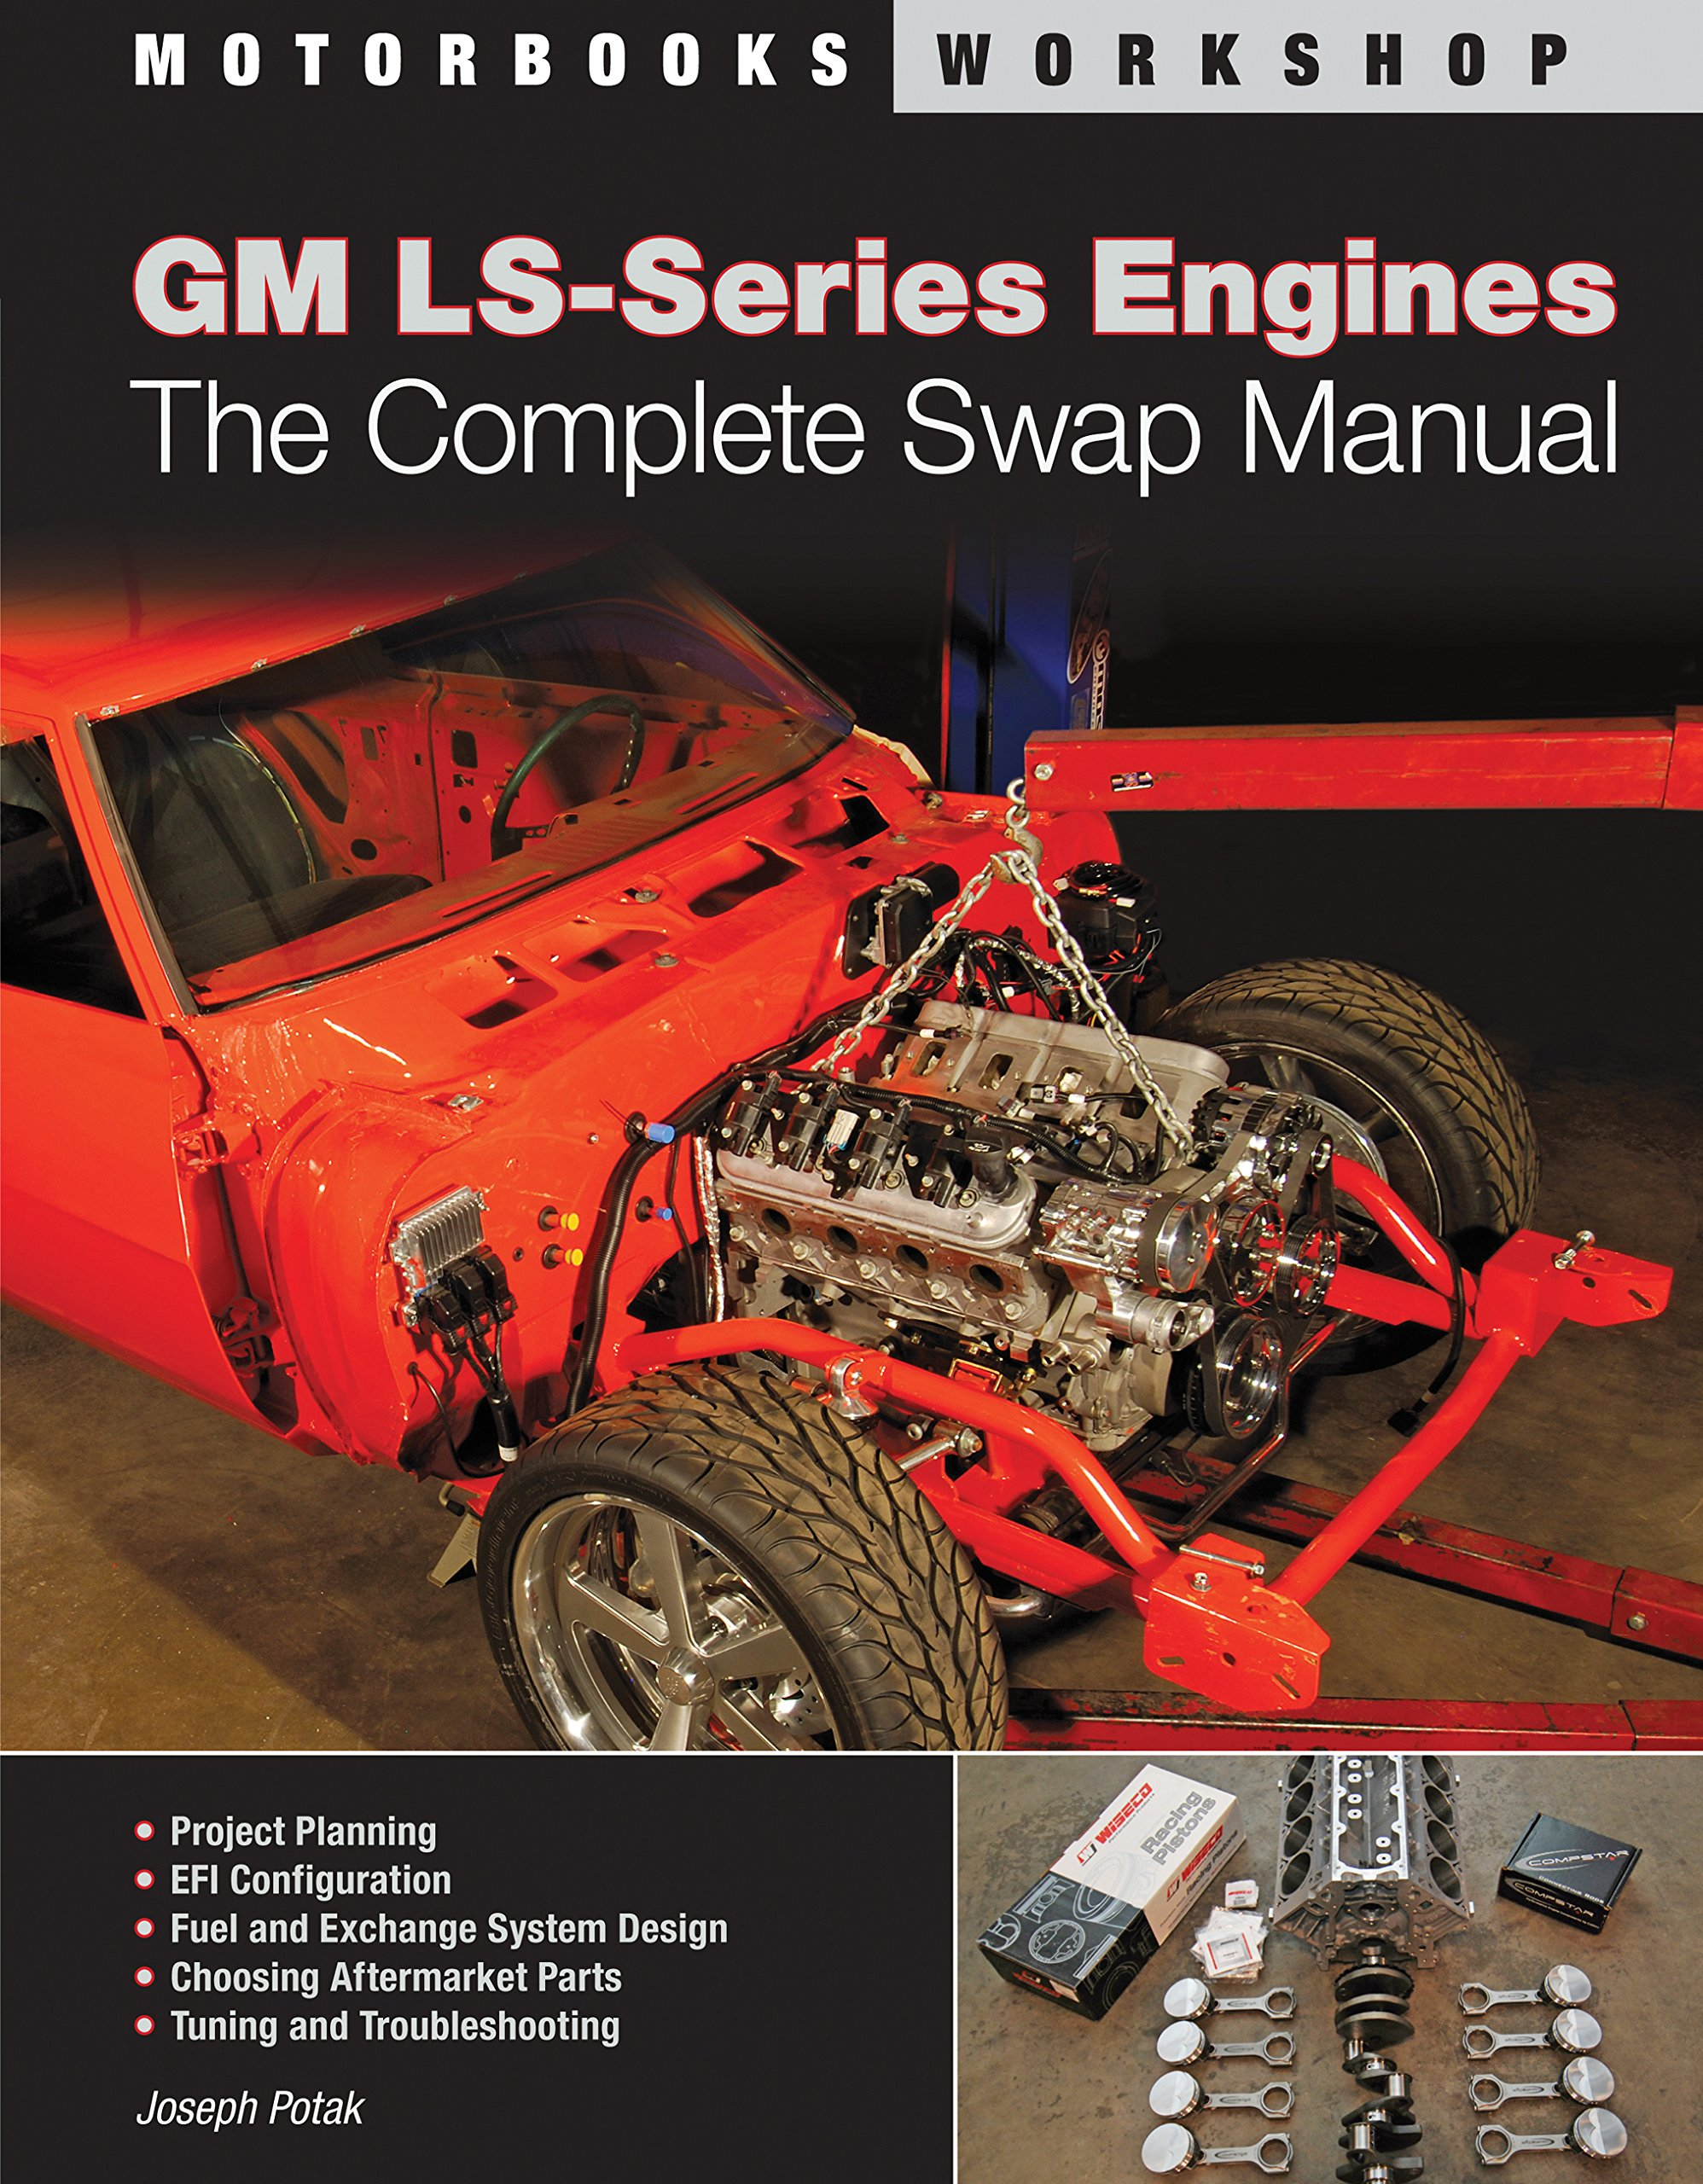 Gm Ls Series Engines The Complete Swap Manual Motorbooks Workshop Wiring Harness Joseph Potak 9780760336090 Books